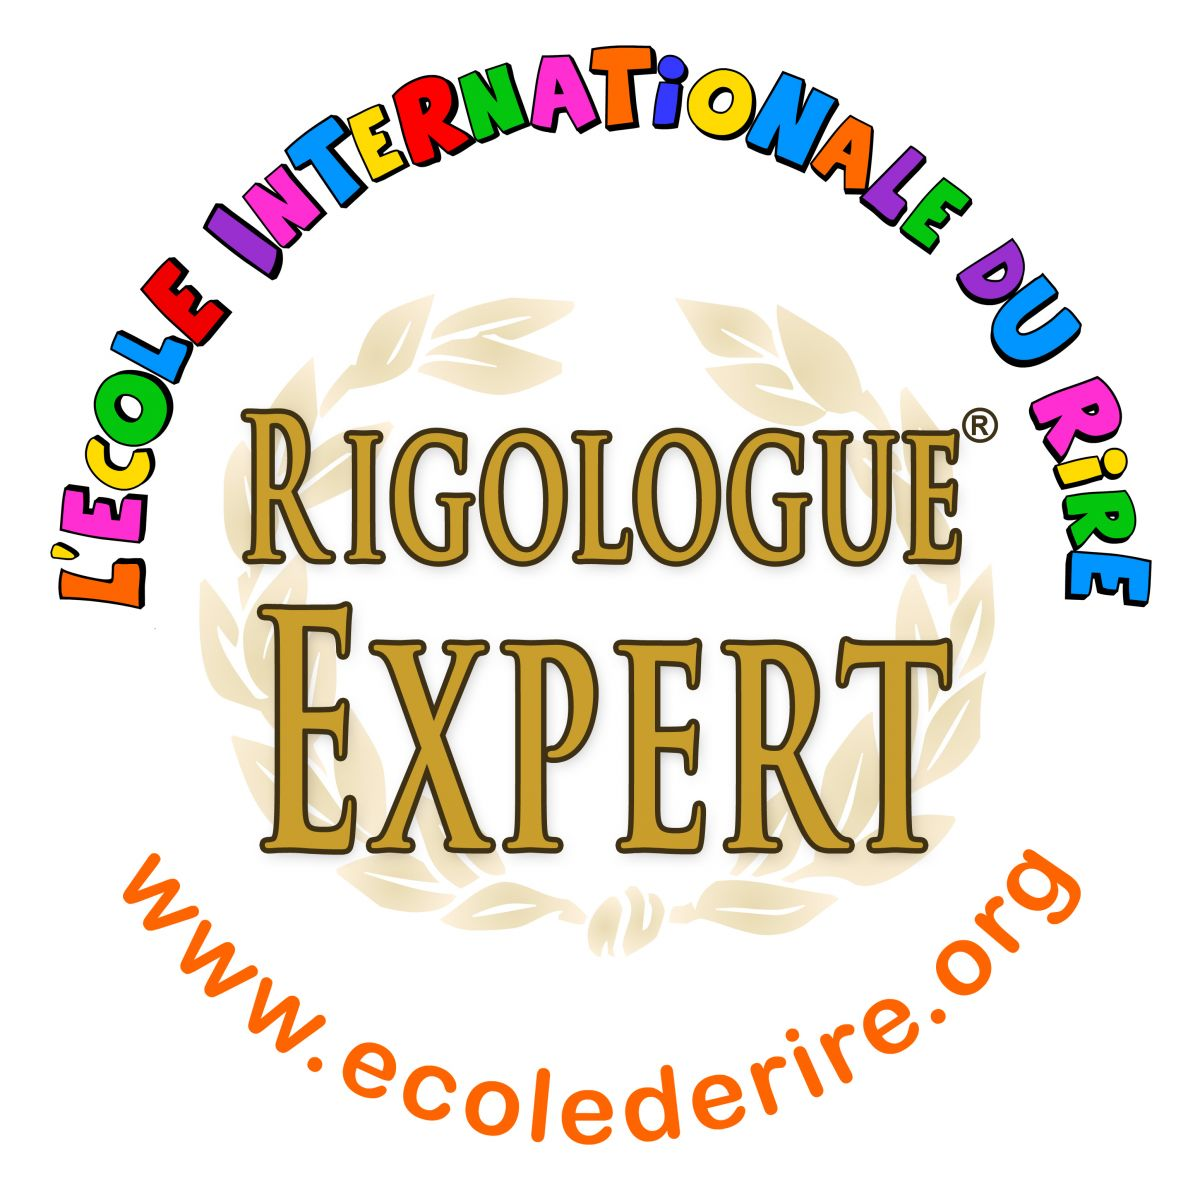 rigologue expert professionnel